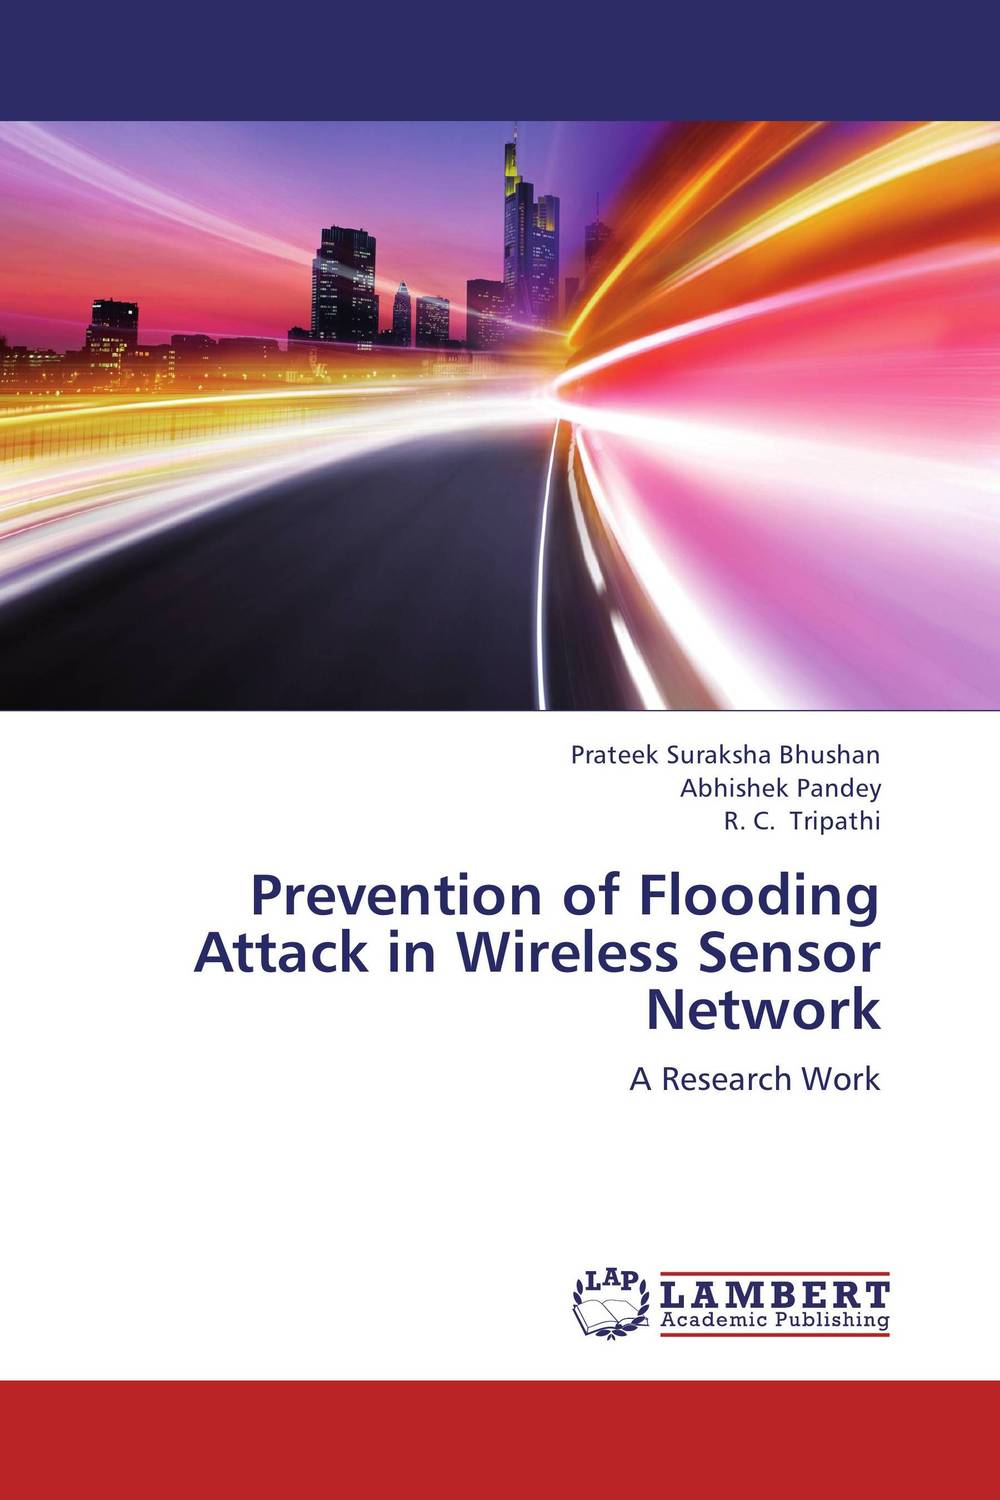 Prevention of Flooding Attack in Wireless Sensor Network characterizing user mobility in wireless networks